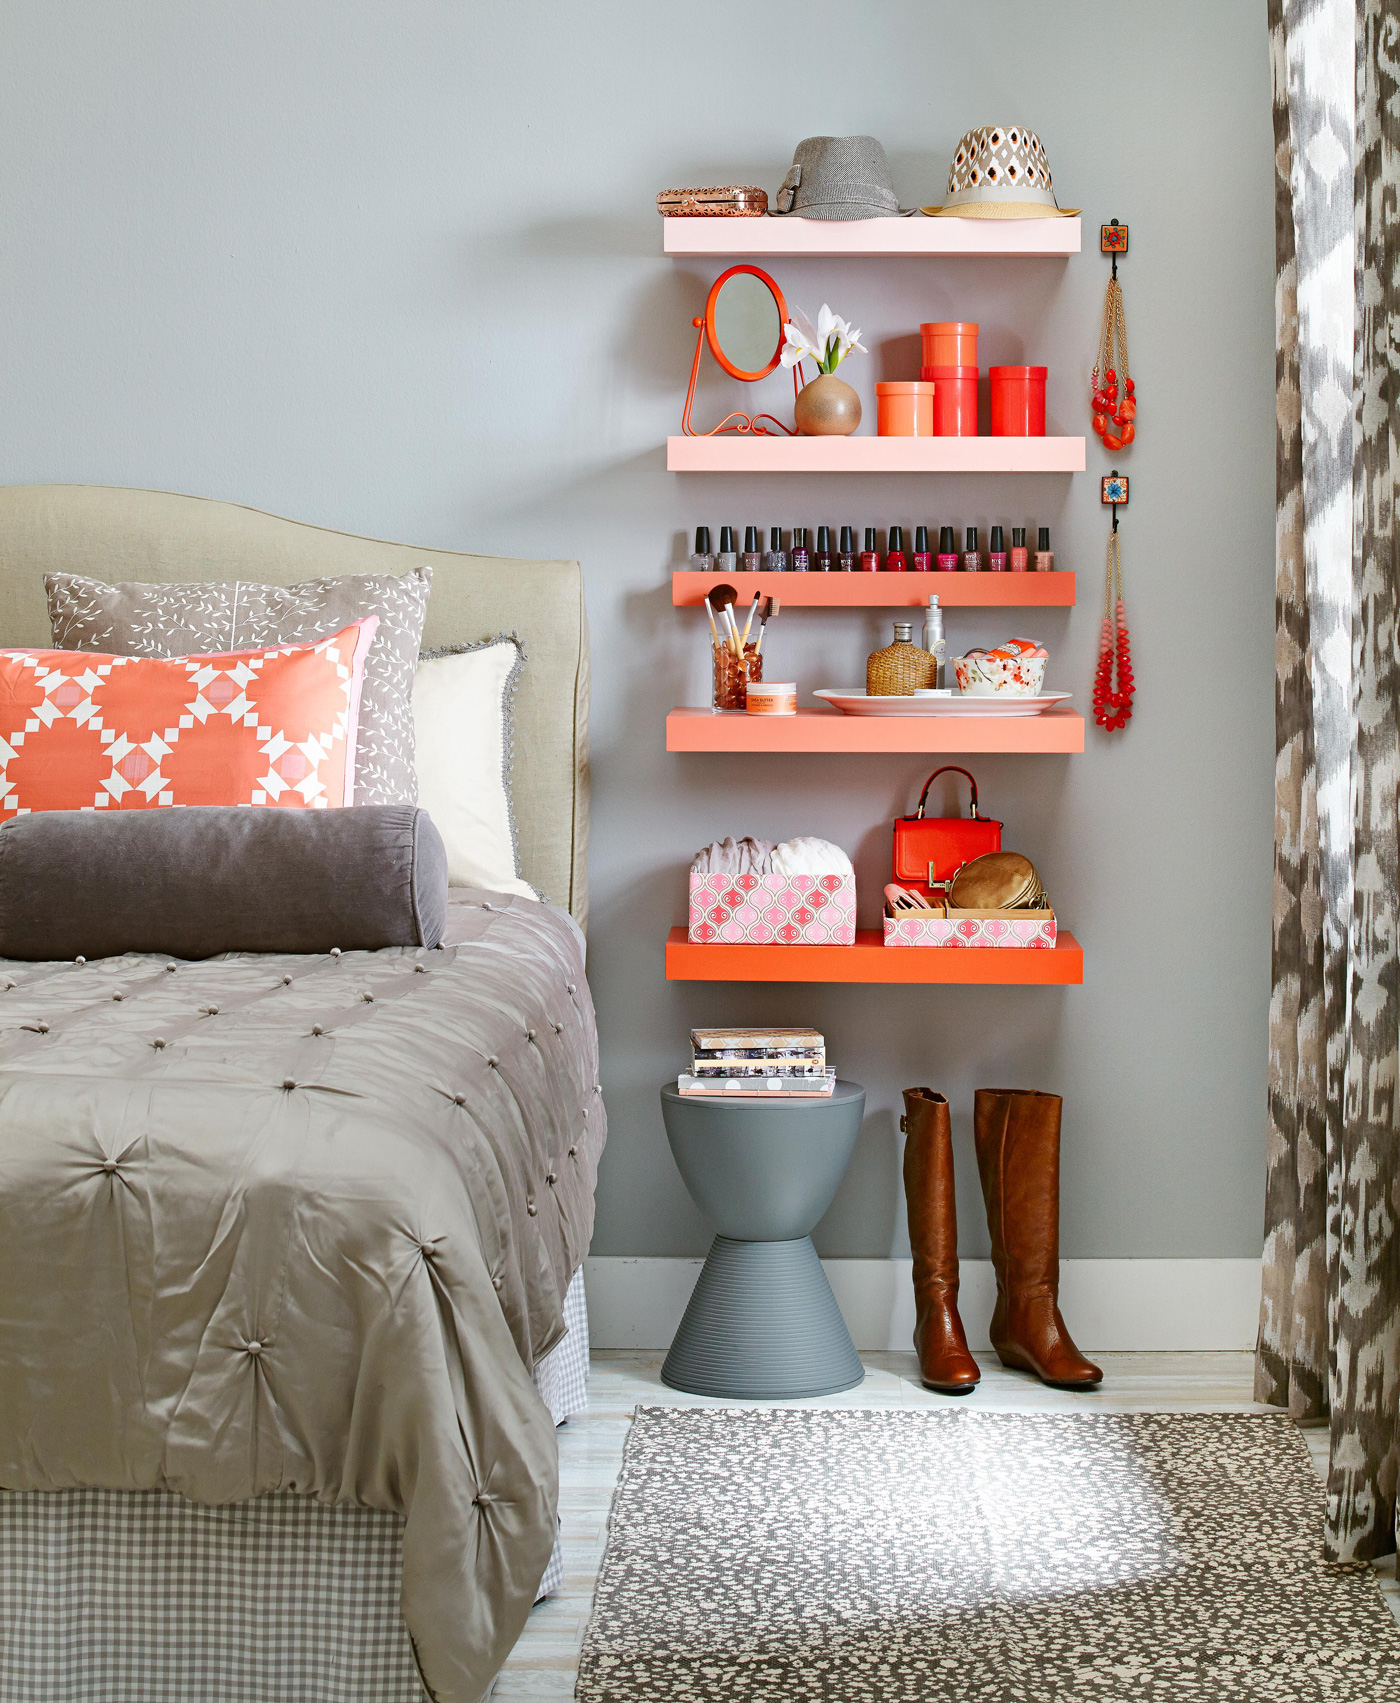 bedside gradient orange colored floating shelves